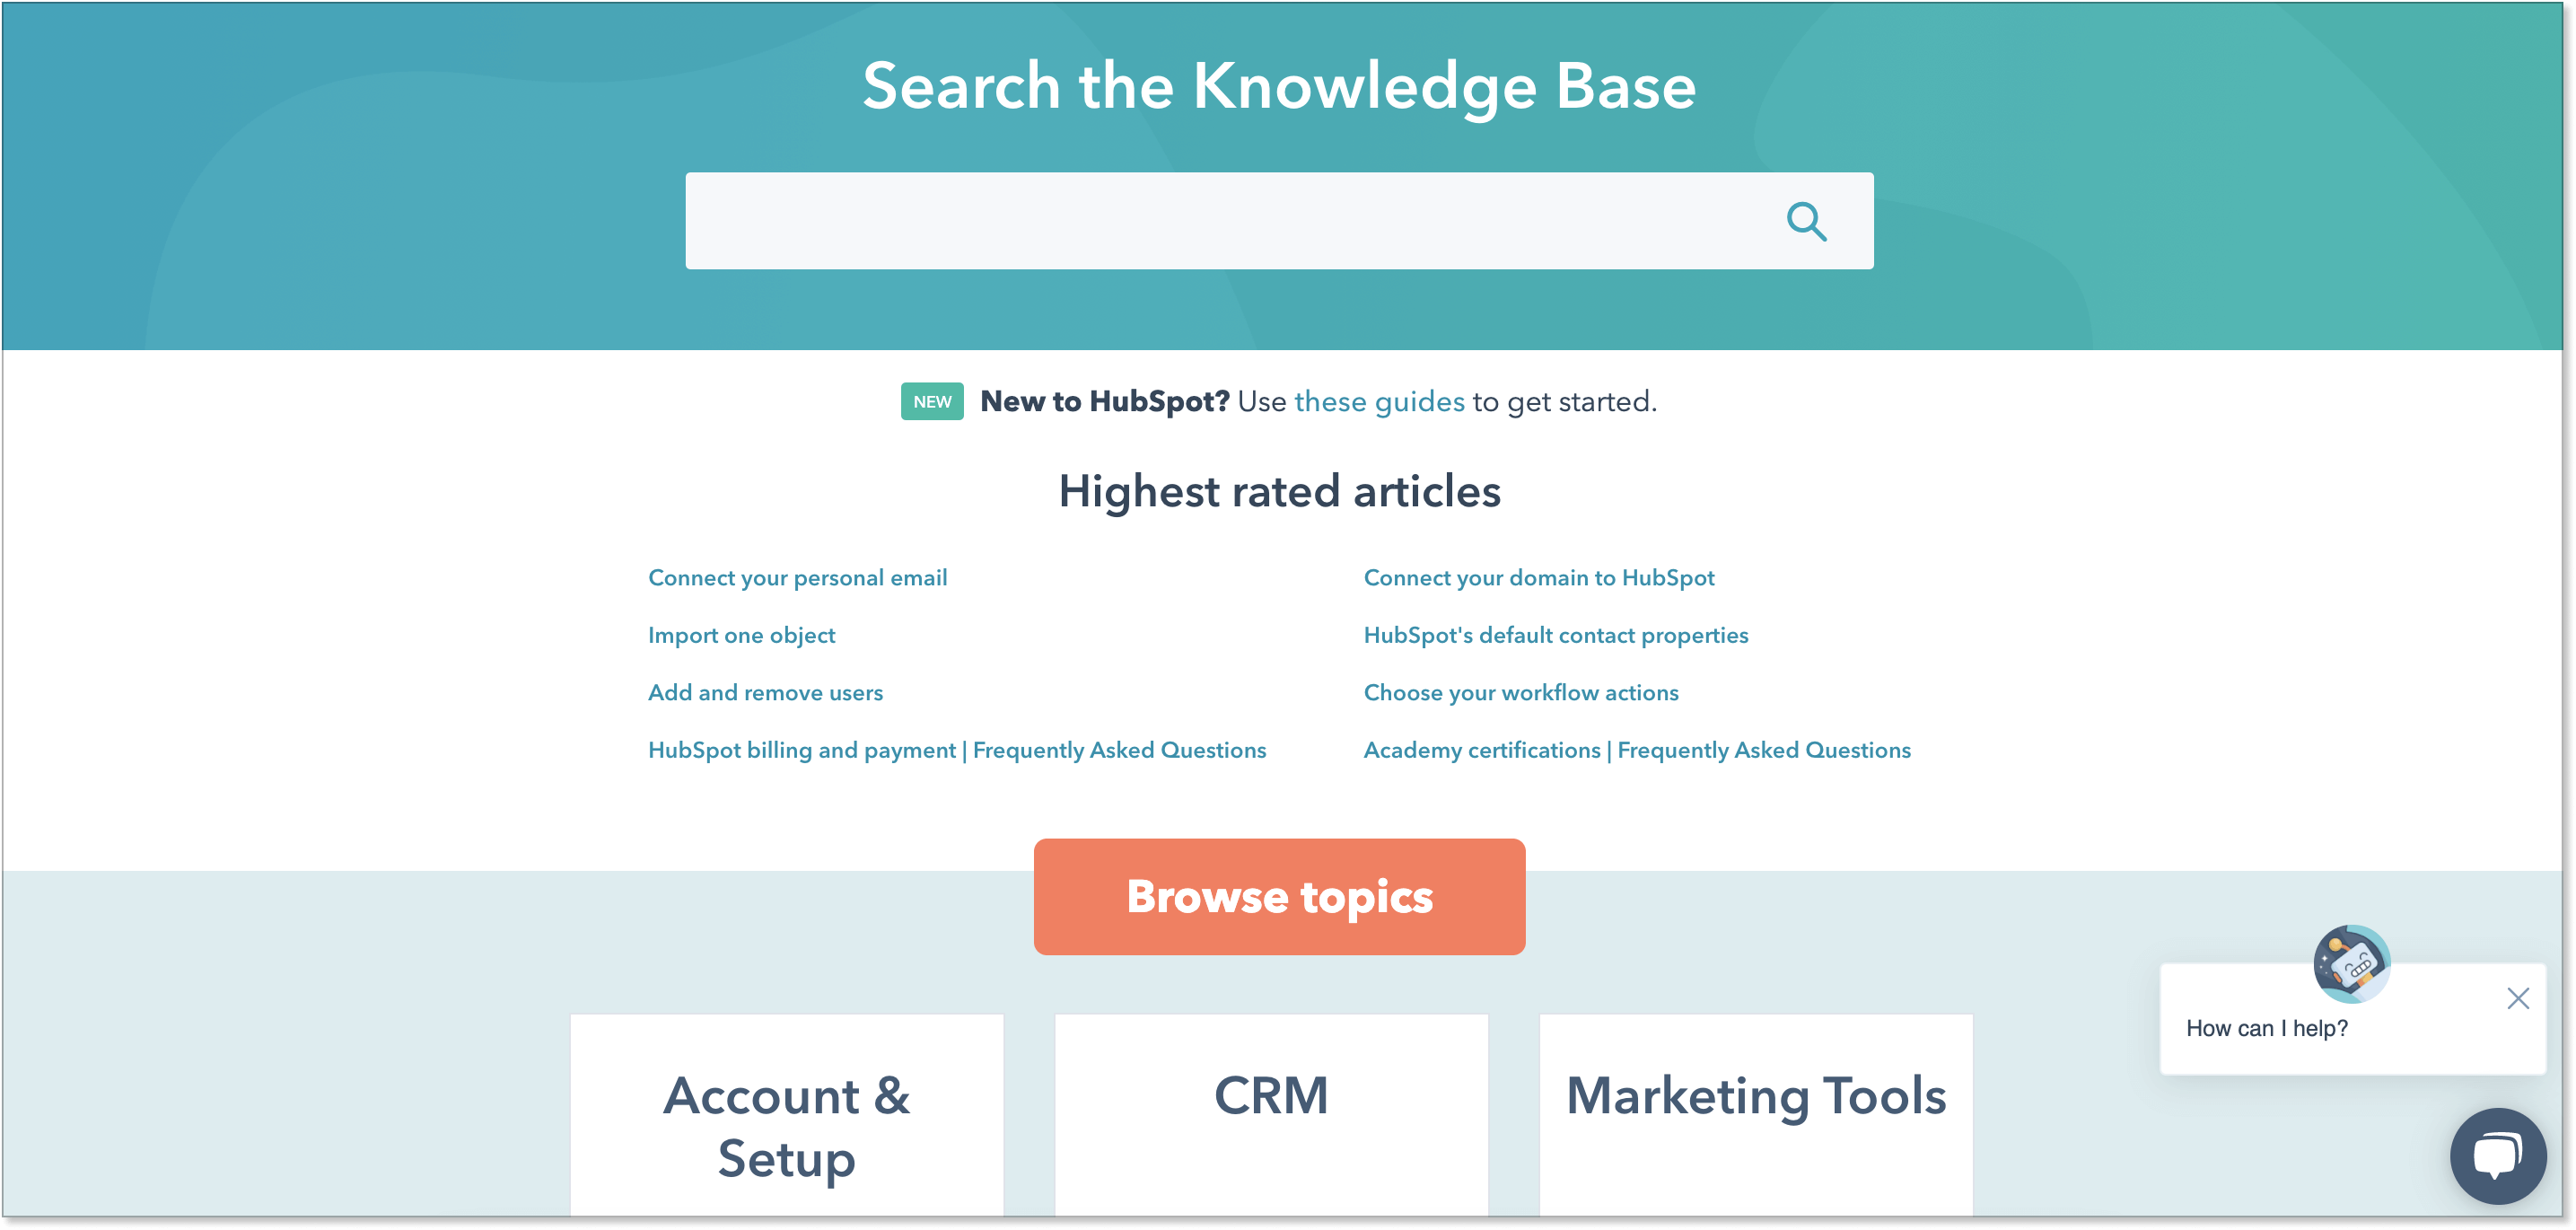 HubSpot's knowledge base